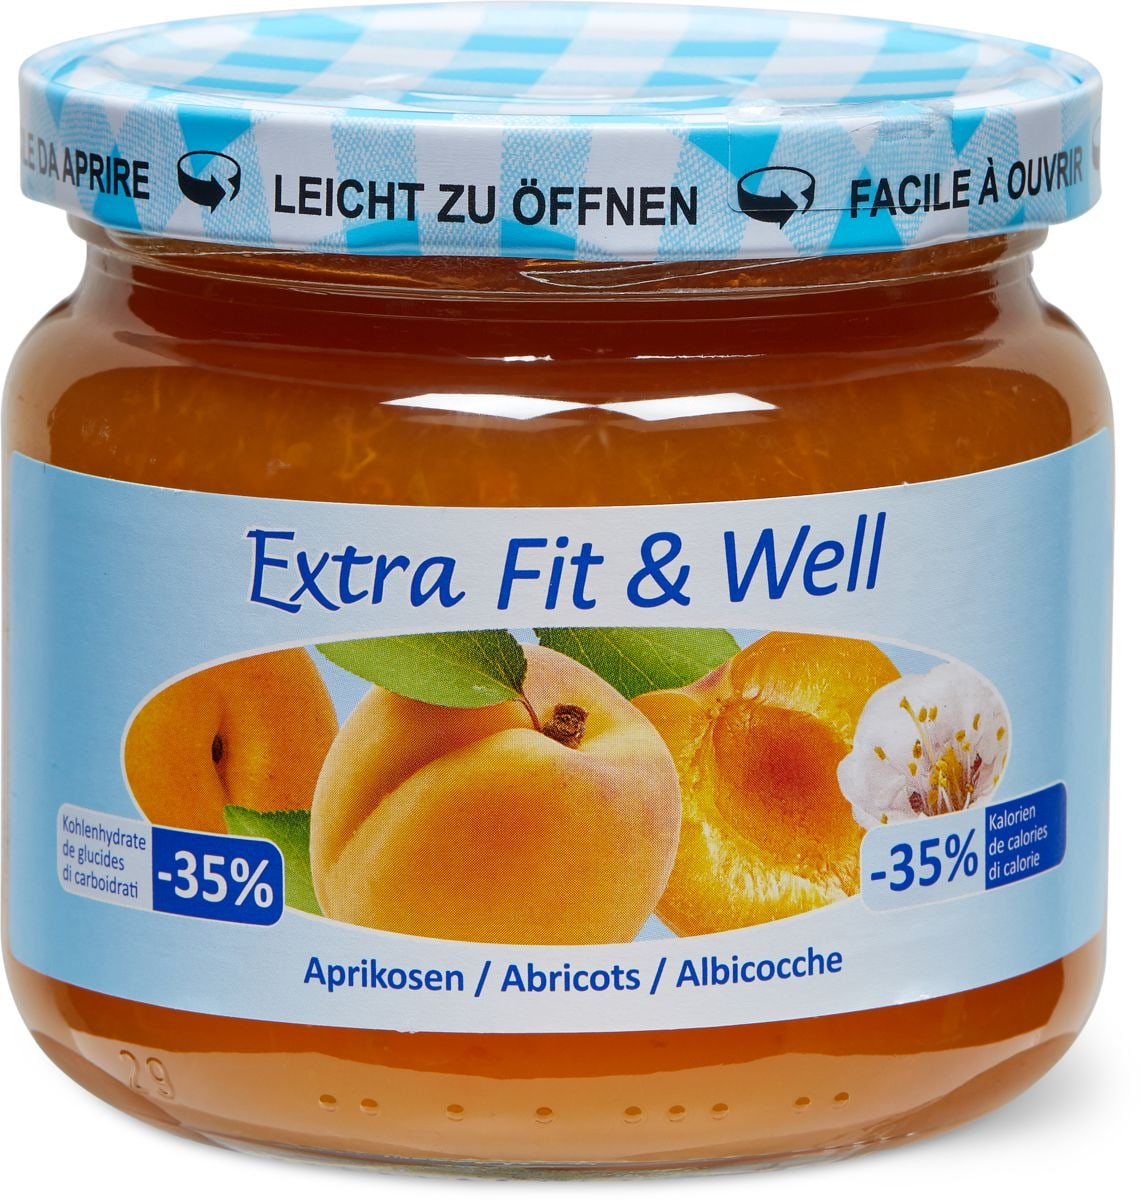 Extra Fit & Well Aprikosen